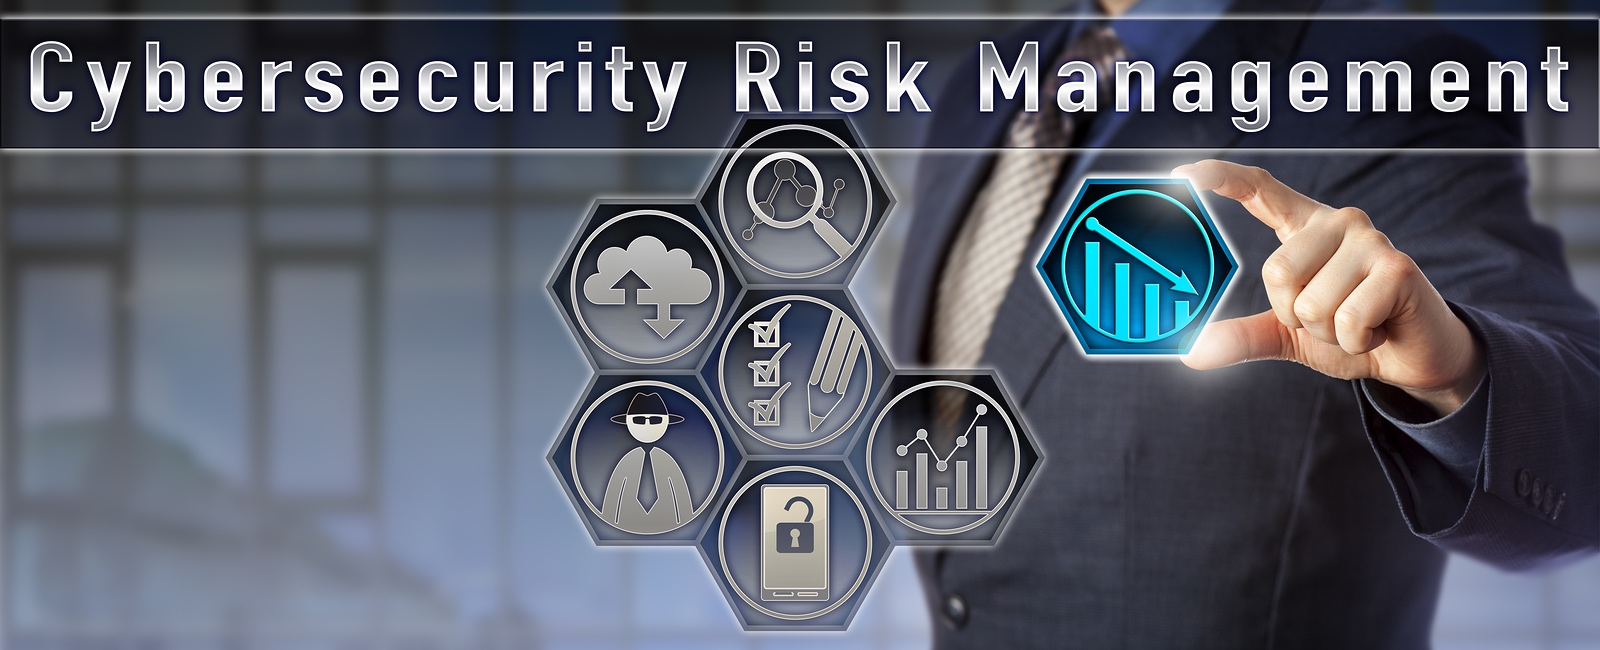 Cybersercurity_risk_management